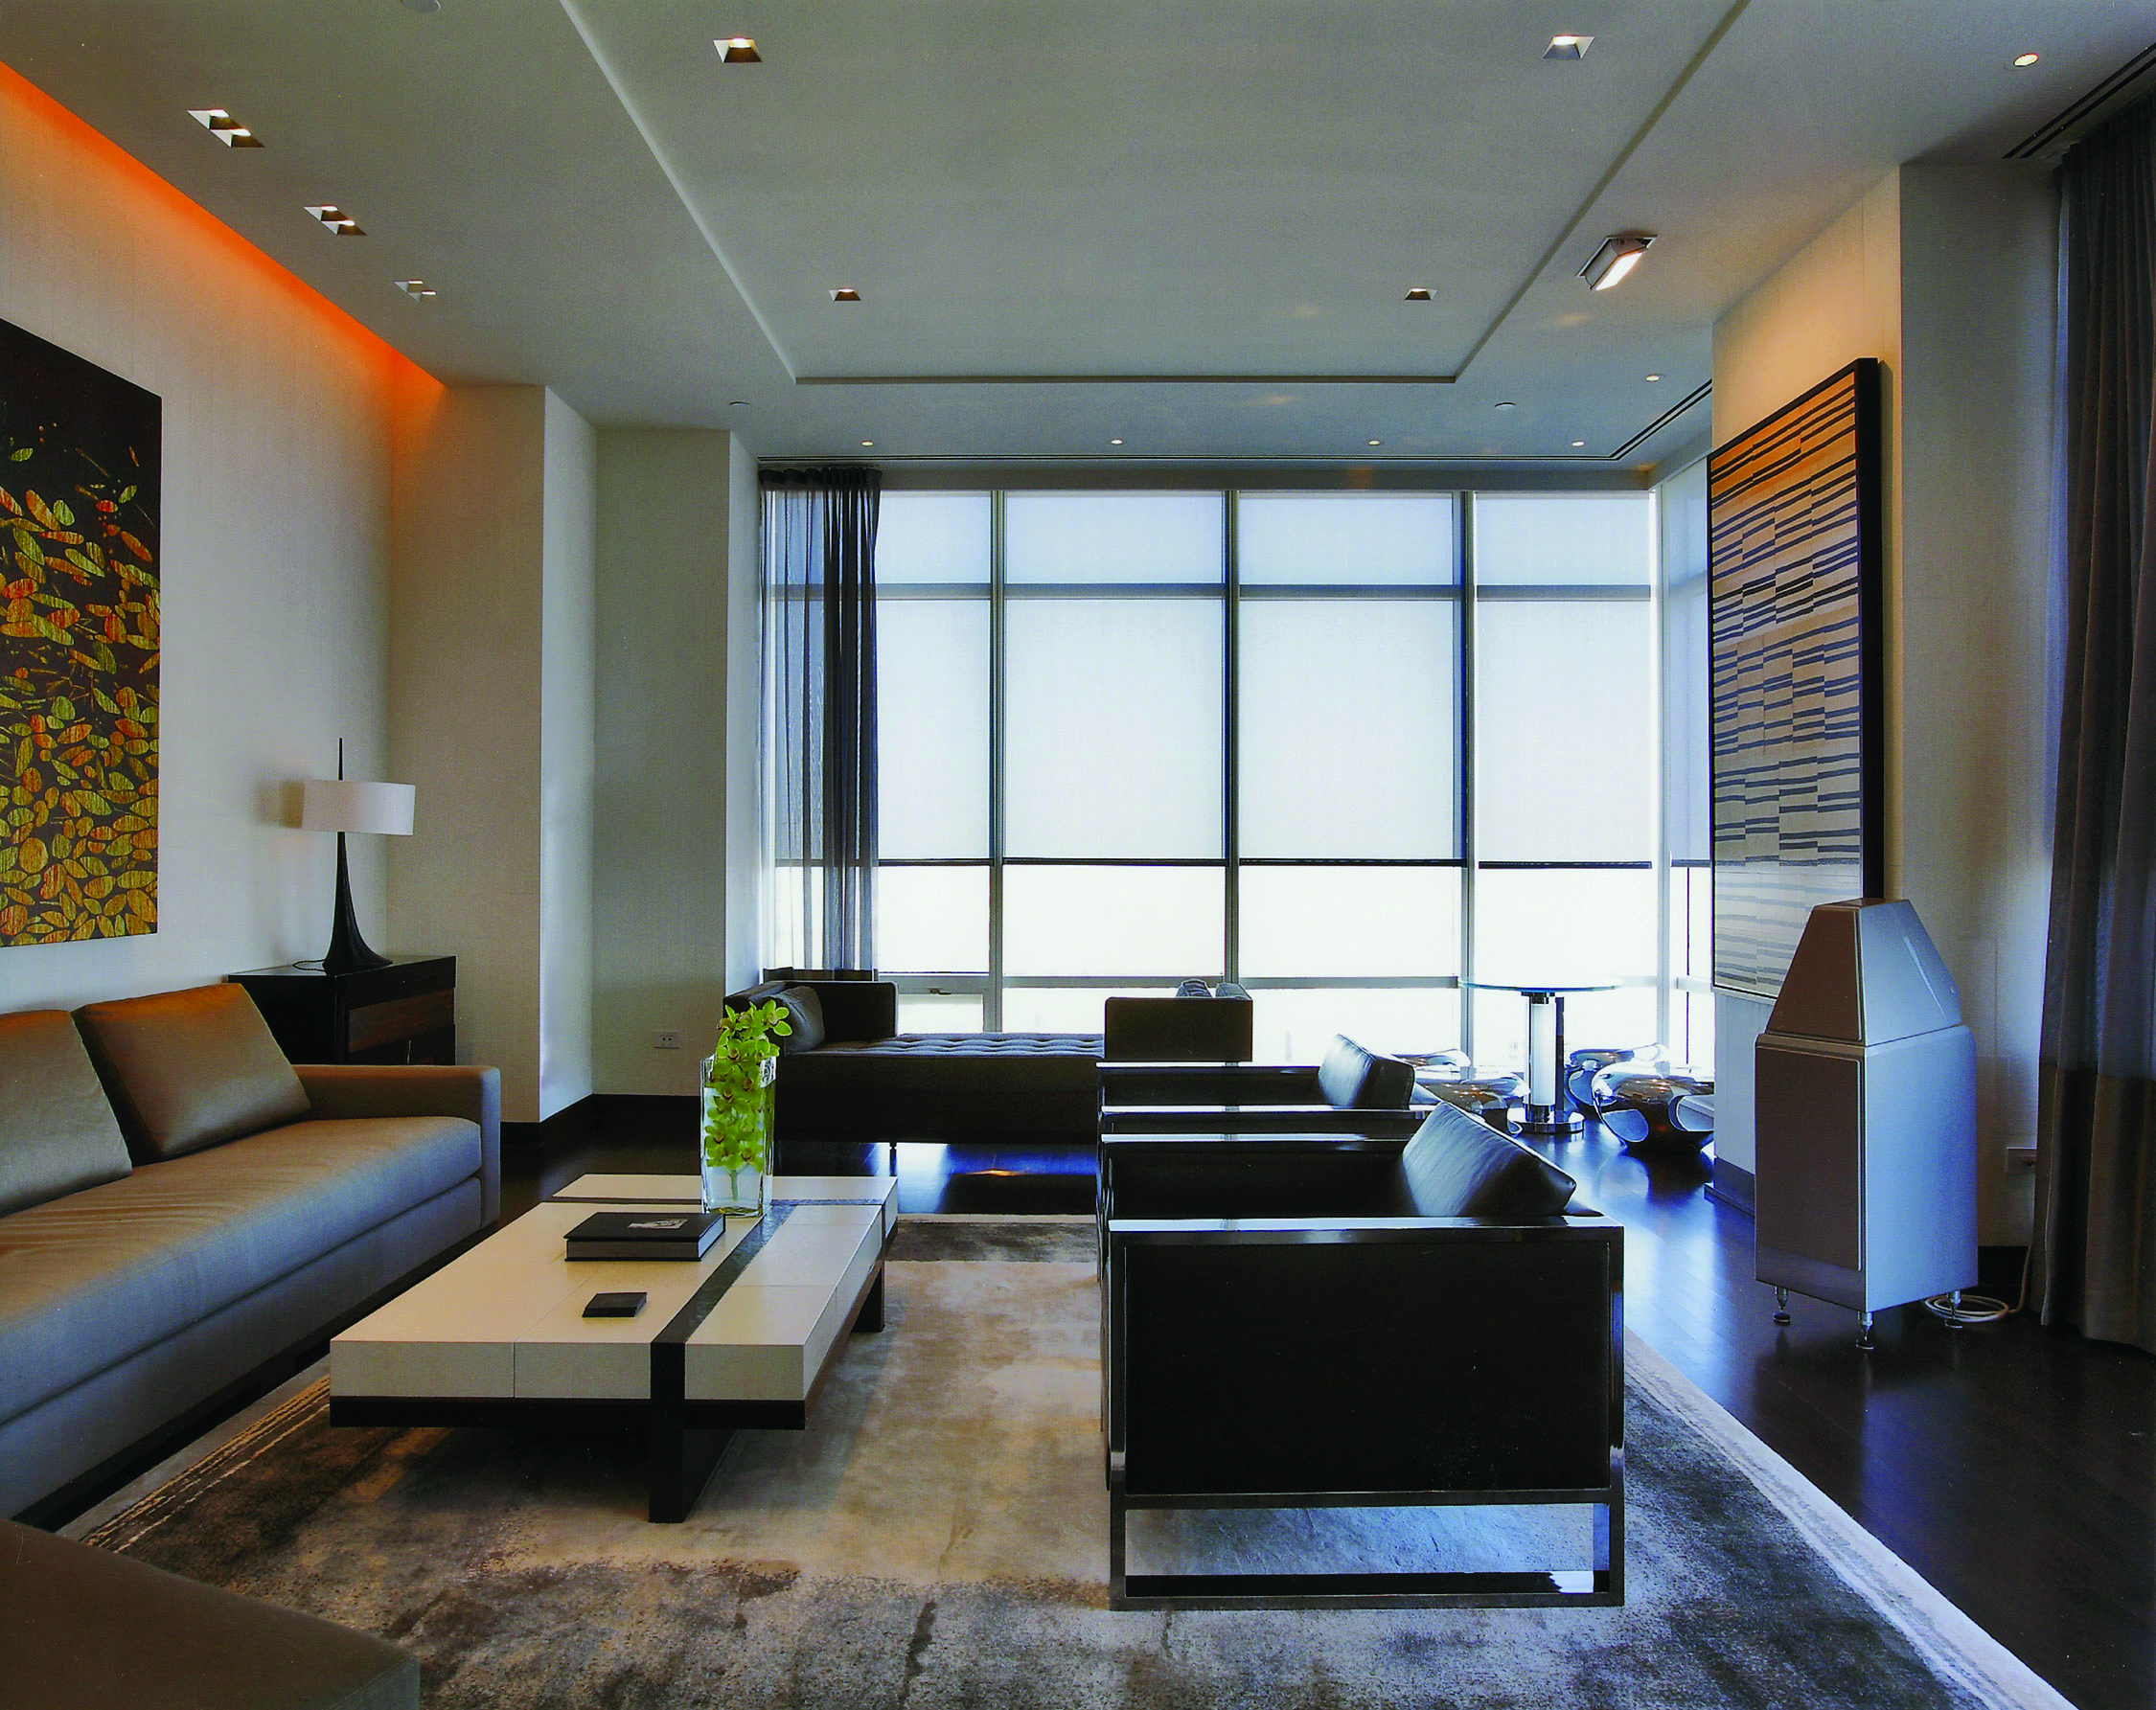 Top 4 Features of Lutron Motorized Shades